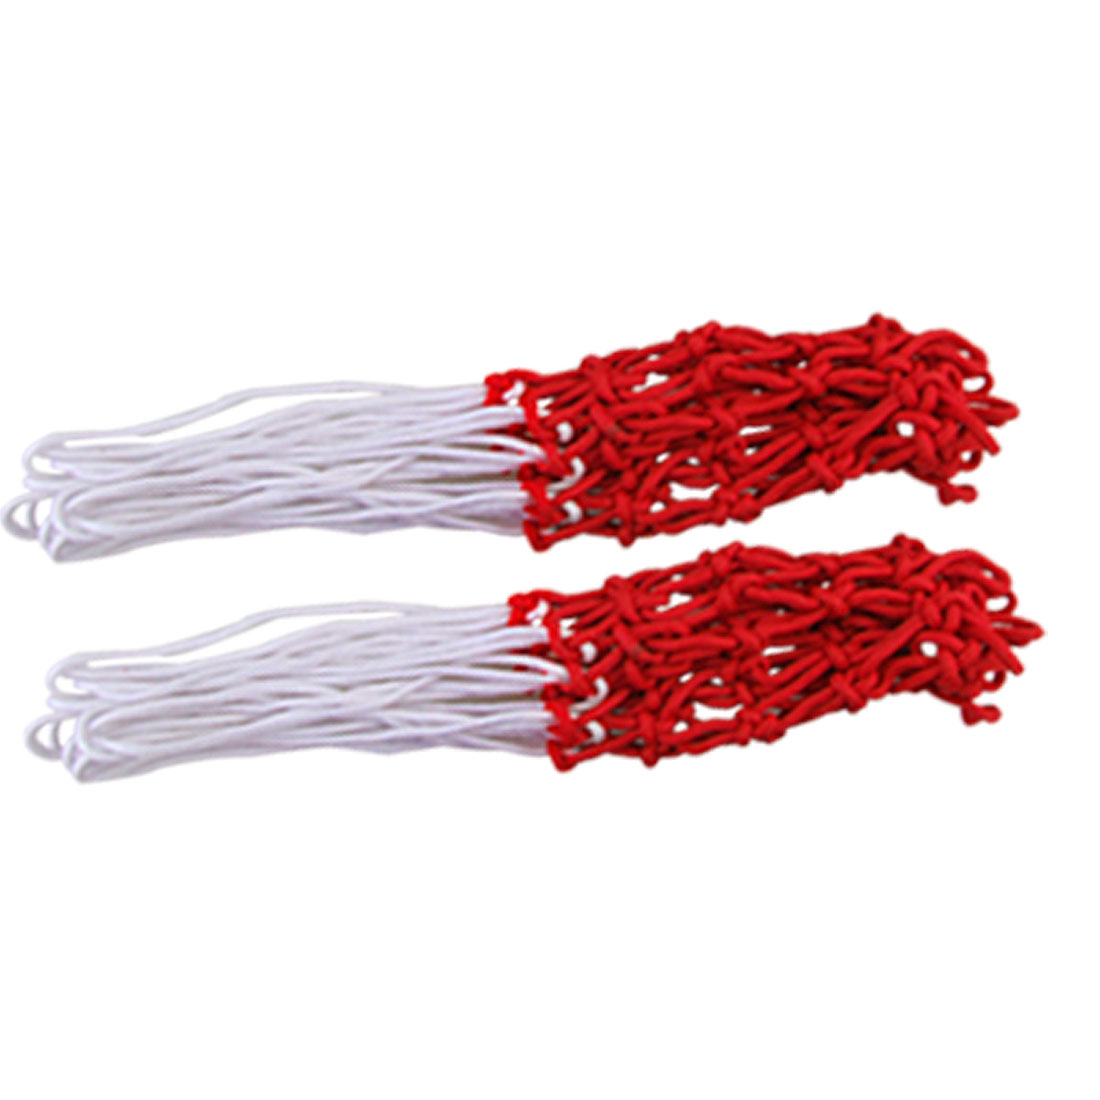 "Unique Bargains 2 Pcs 16.5"" Long All-Weather Great Replacement Nylon Basketball Nets White Red"